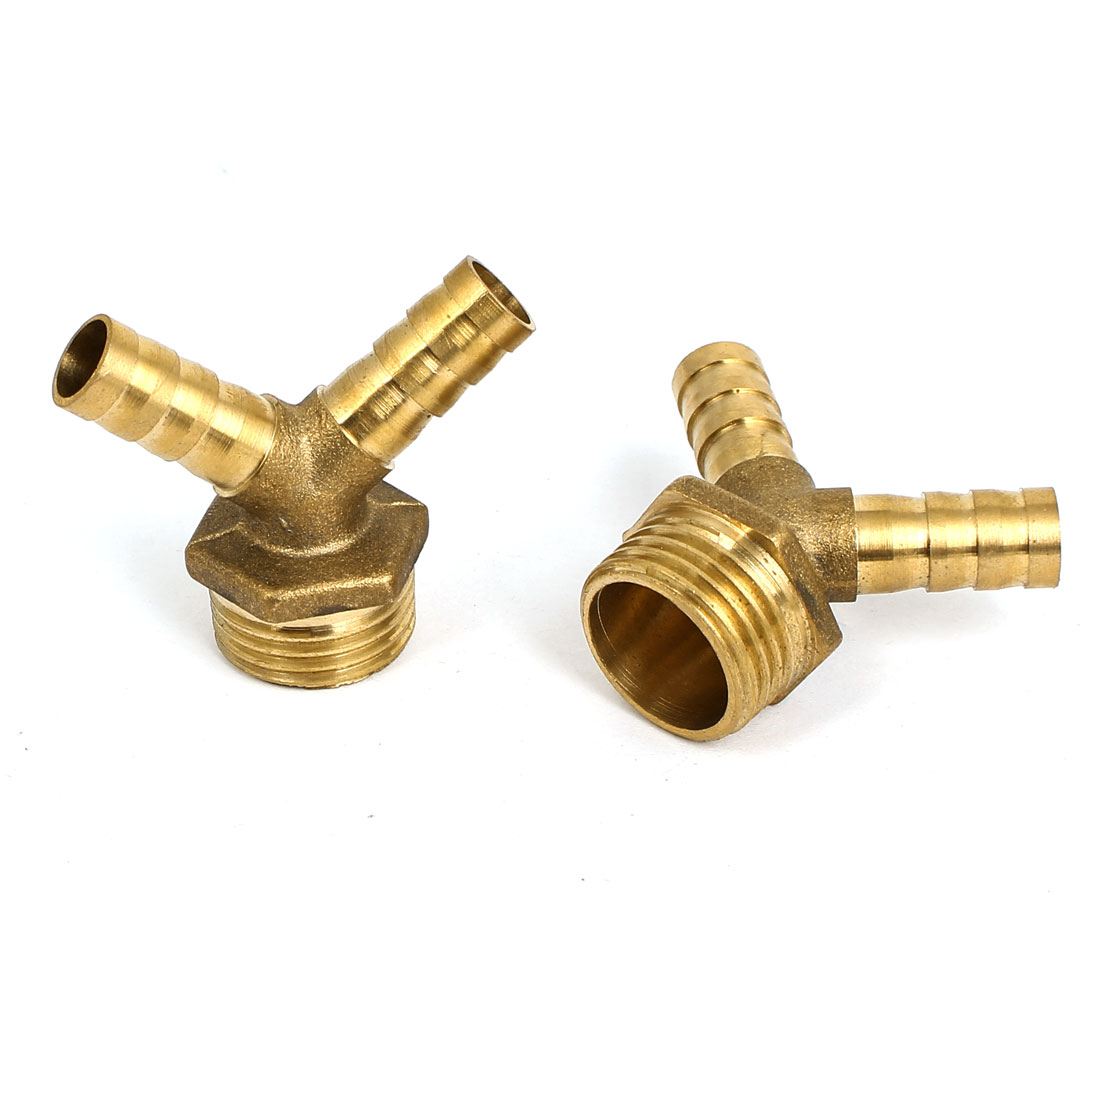 5/8BSP Thread Y Shaped Brass Hose Barb Pipe Fittting Connector 2pcs